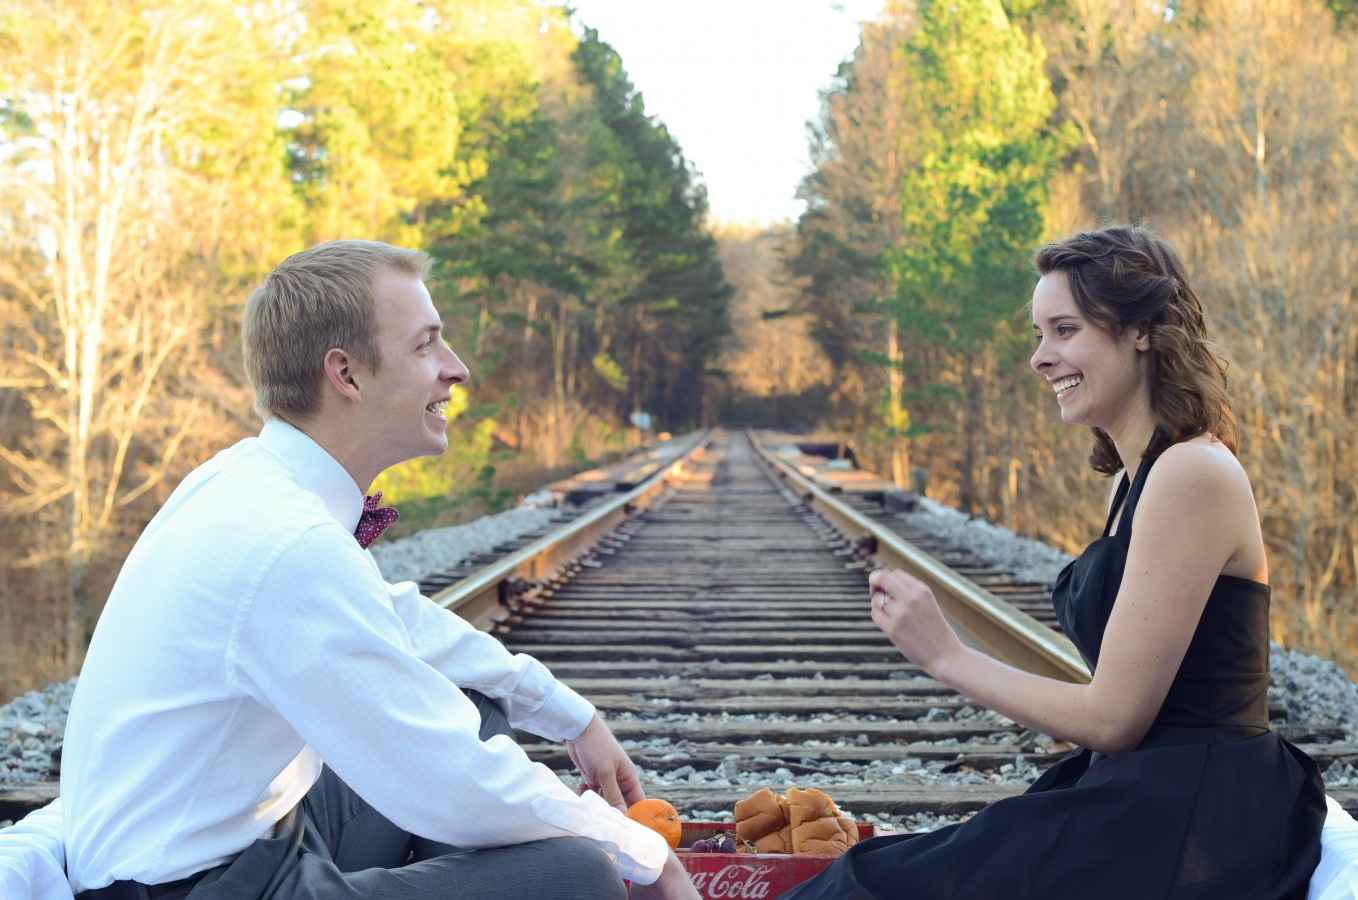 Engagement shoot. Photos by Rachael Adams photography.